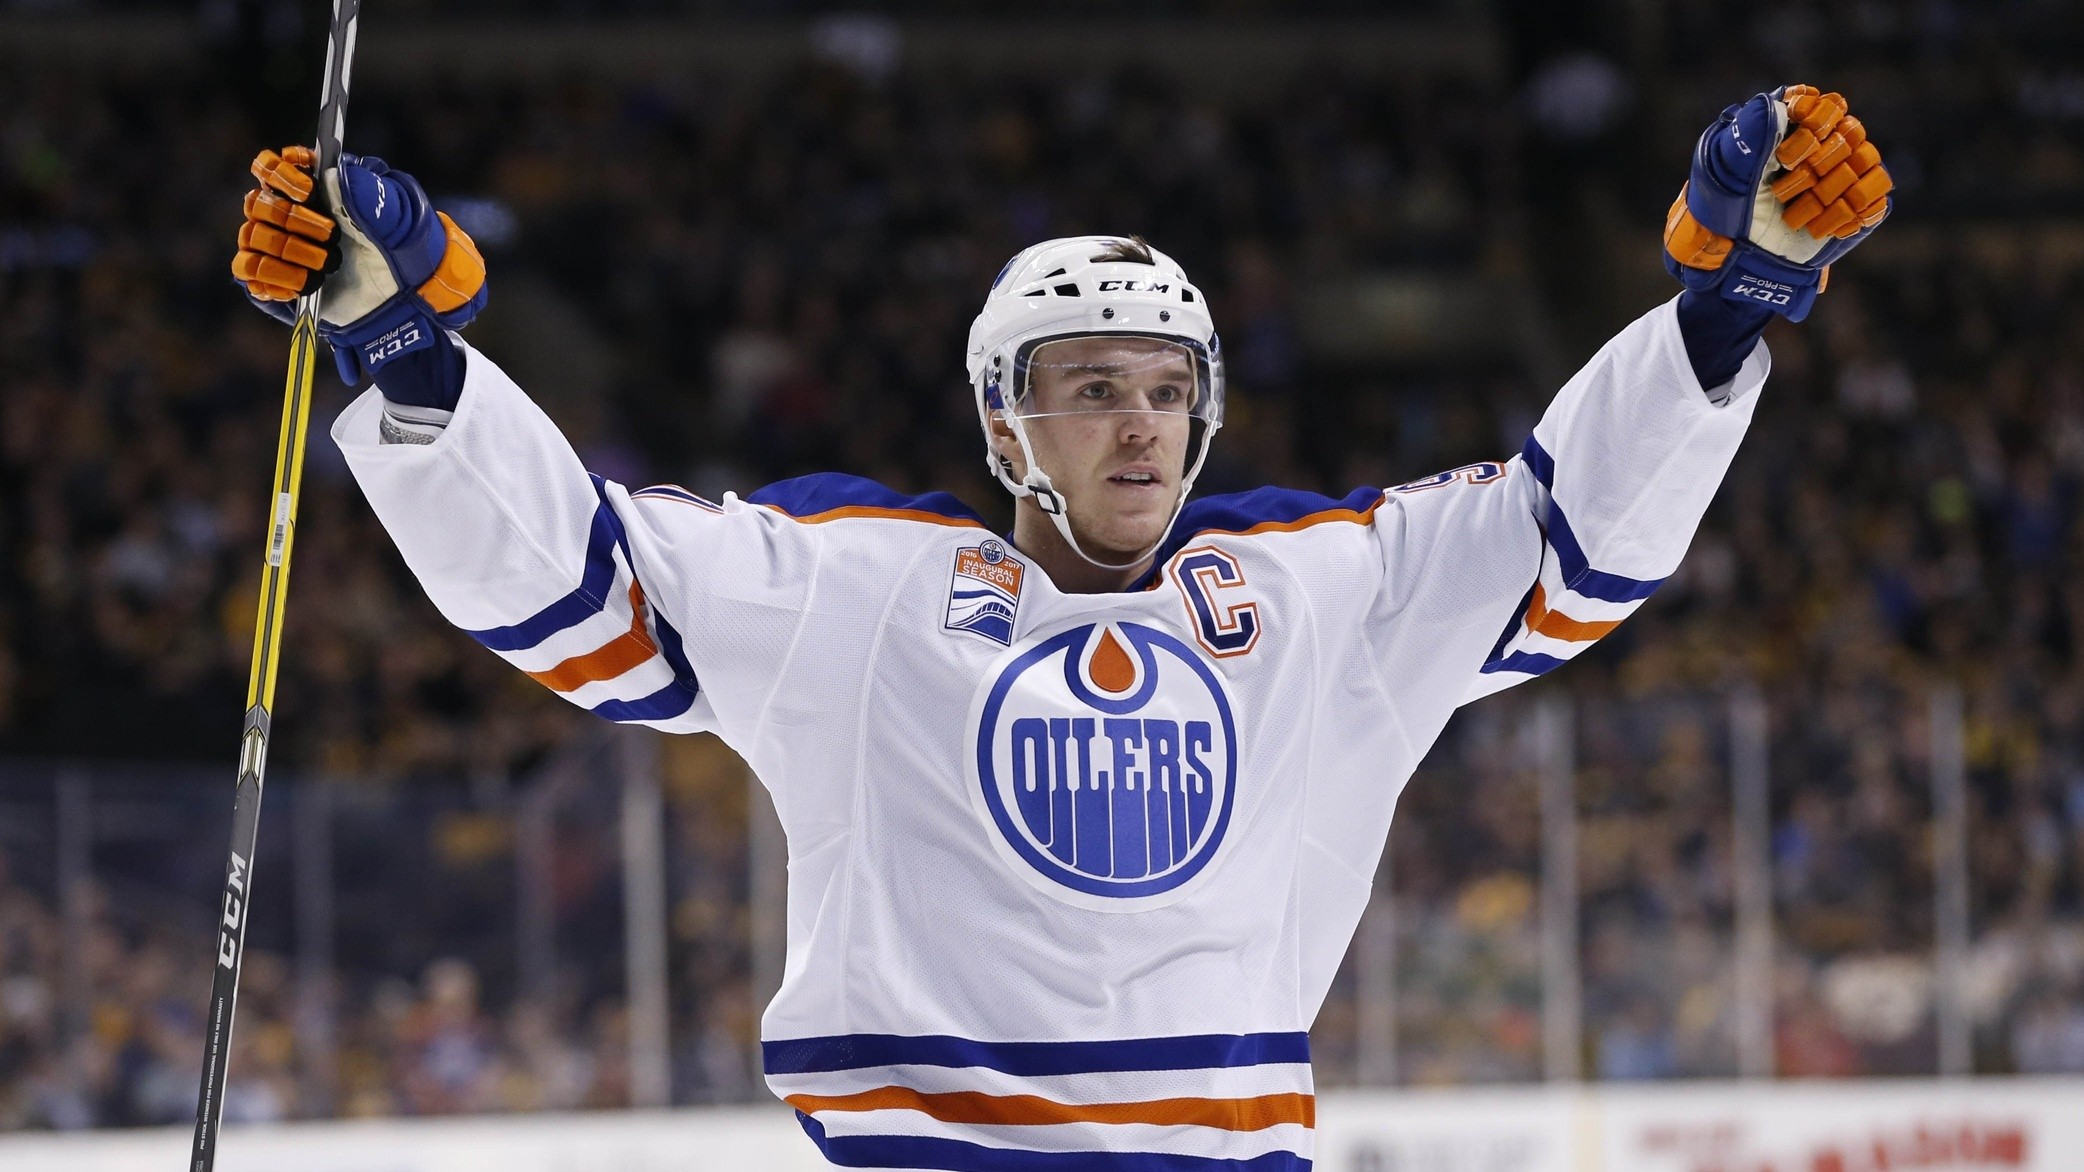 NHL Midseason Award Watch: The Calder Trophy Logjam and Connor McDavid's Hart